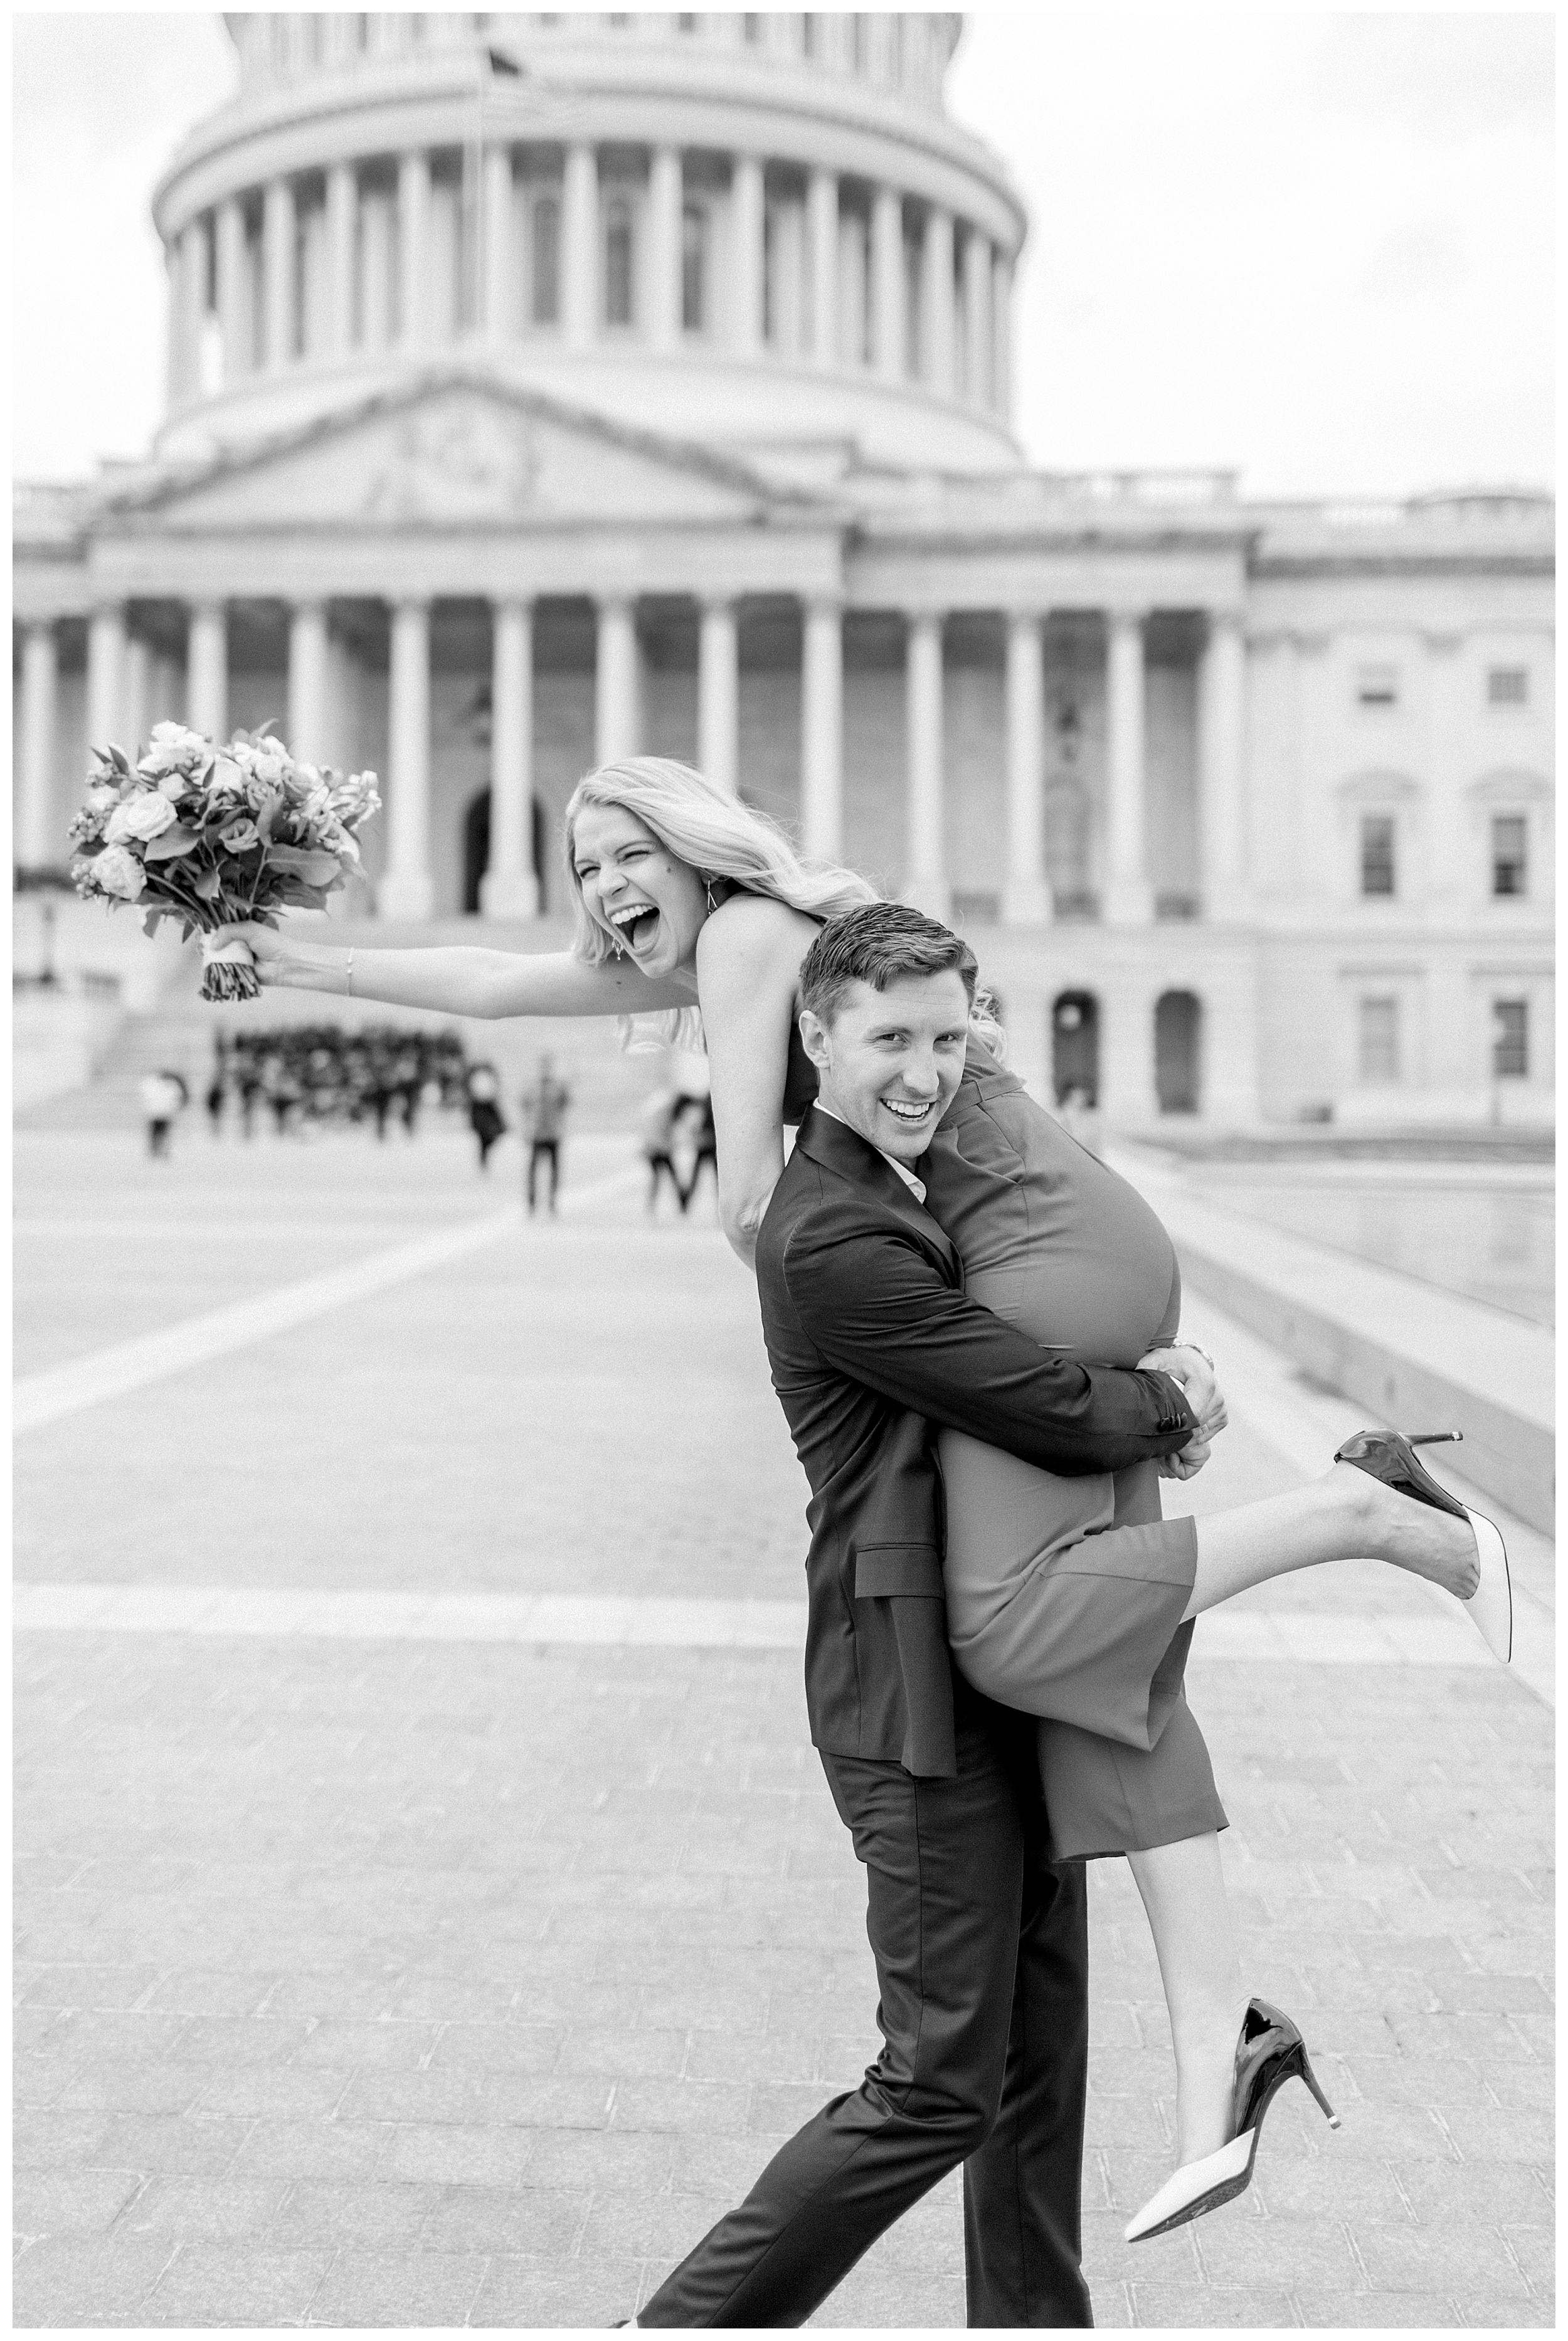 District of Columbia Elopement | Library of Congress Engagement Session Washington DC_0000.jpg